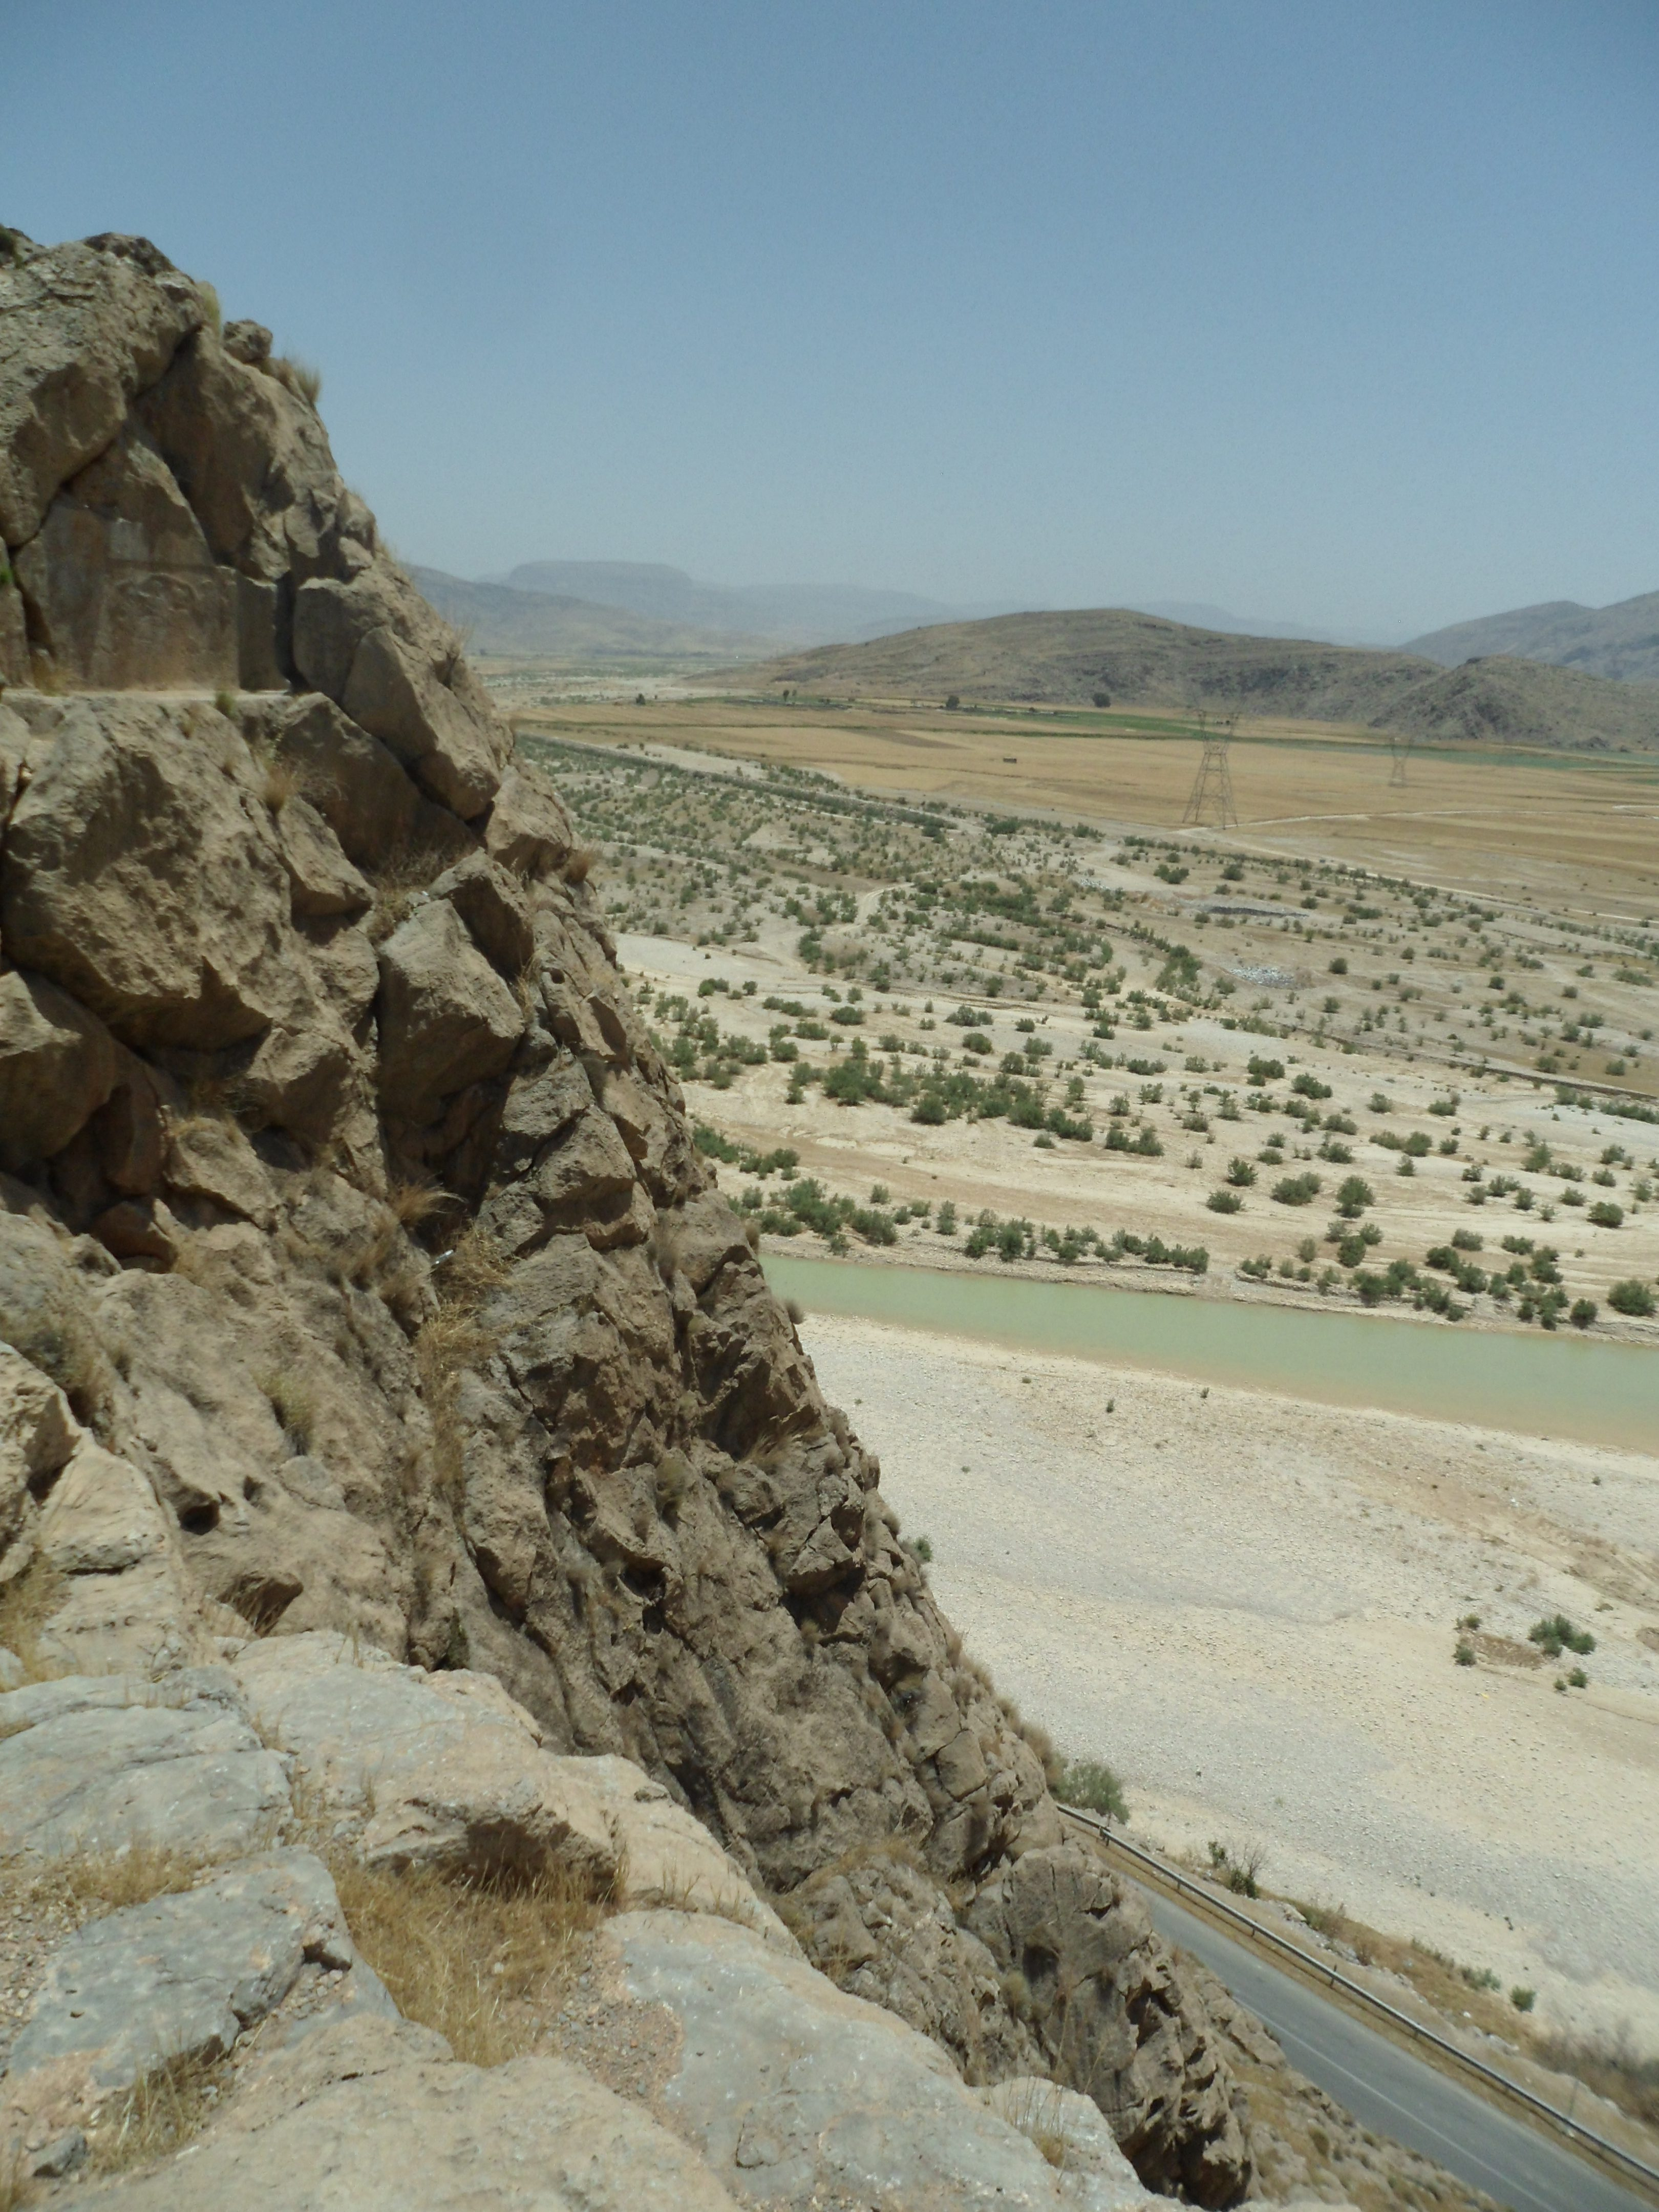 The Elamite rock relief and valley below at Kurangun in Iran.  Photo by Sean Manning, May 2016.